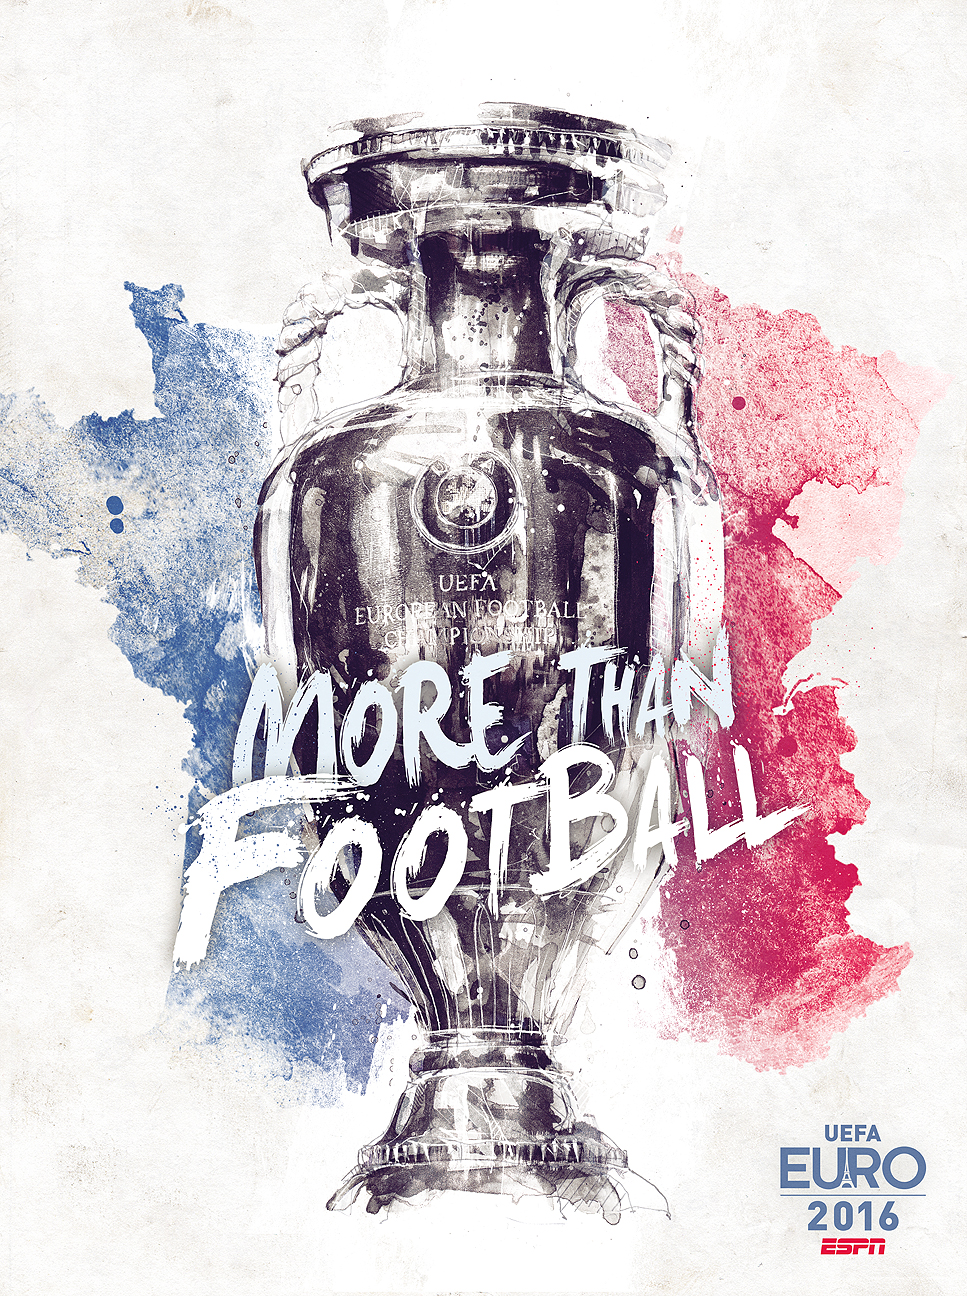 Best Europe World Cup 2018 - euro-2016-espn-poster  Perfect Image Reference_119468 .jpg